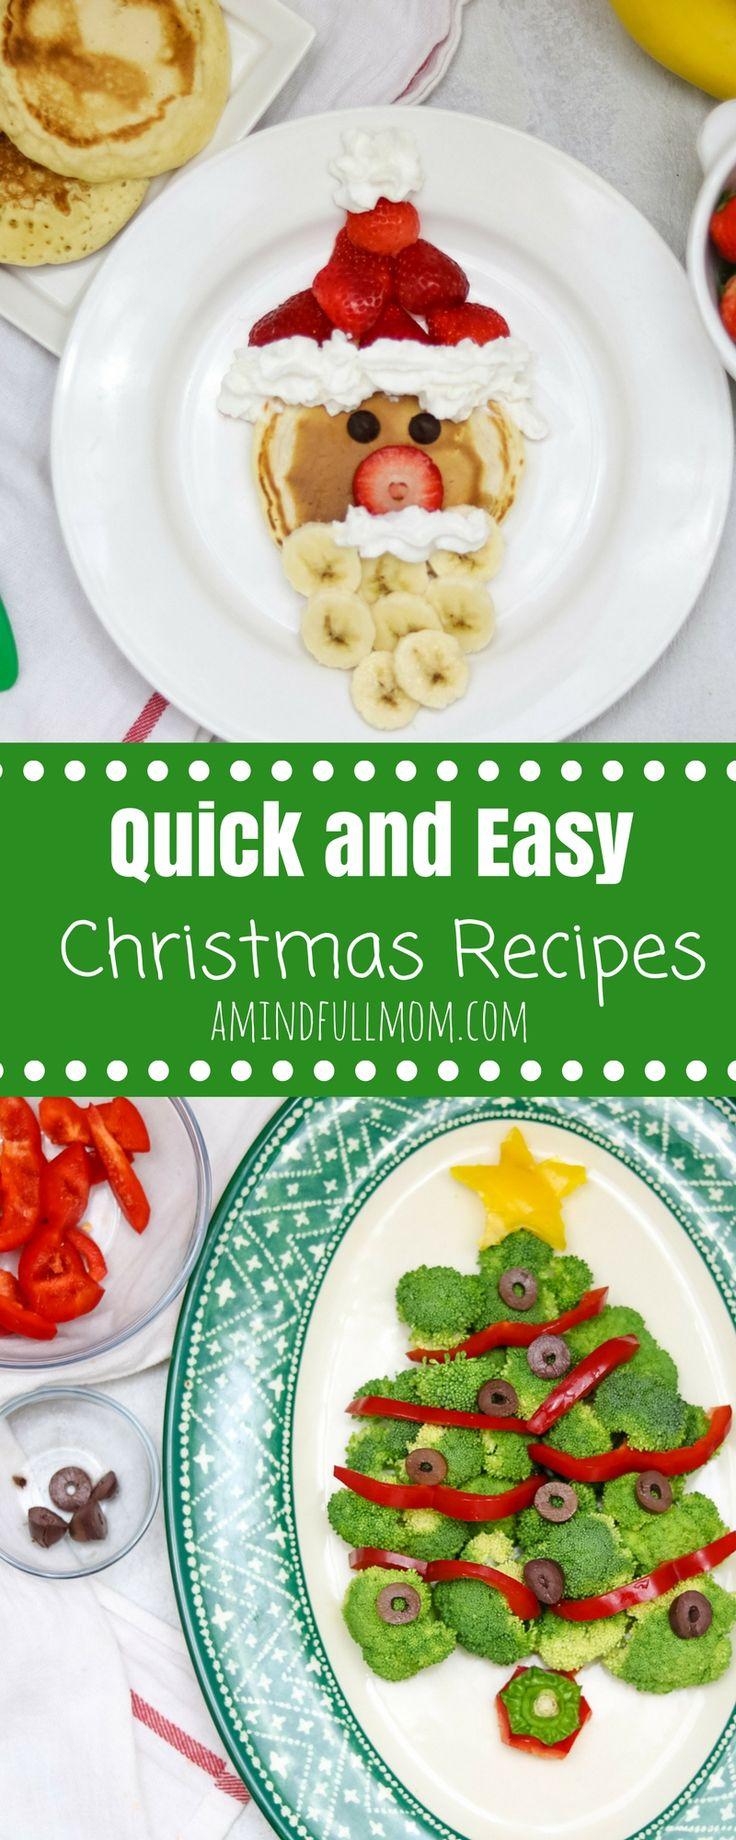 Easy Kid Friendly Christmas Recipes: Creative but EASY ways to bring a little magic to your food this holiday season. Step-by-step instructions on how to make Santa Pancakes, Broccoli Christmas Tree, Rudolph Reindeer Rice Cake, and a Candy Cane Pizza. #ChristmasRecipes #christmasrecipesforkids #funwithfood via @amindfullmom